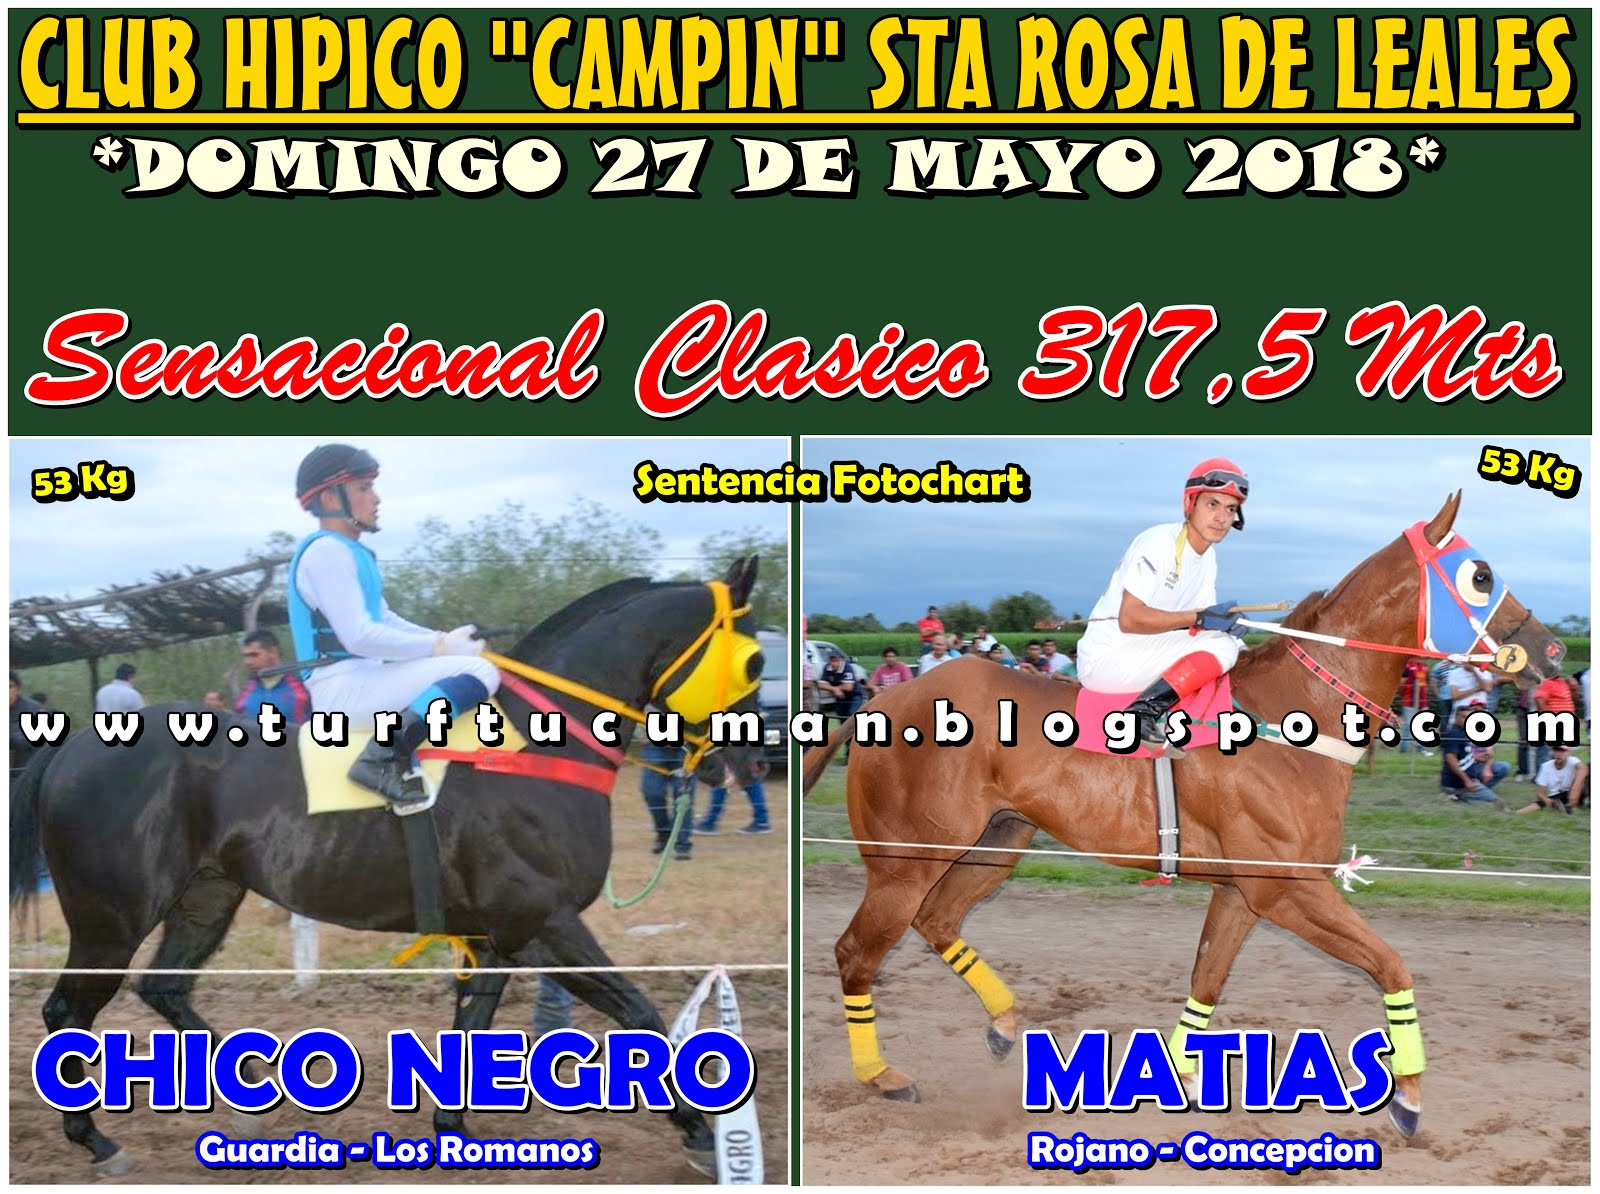 MATIAS VS CHICO NEGRO